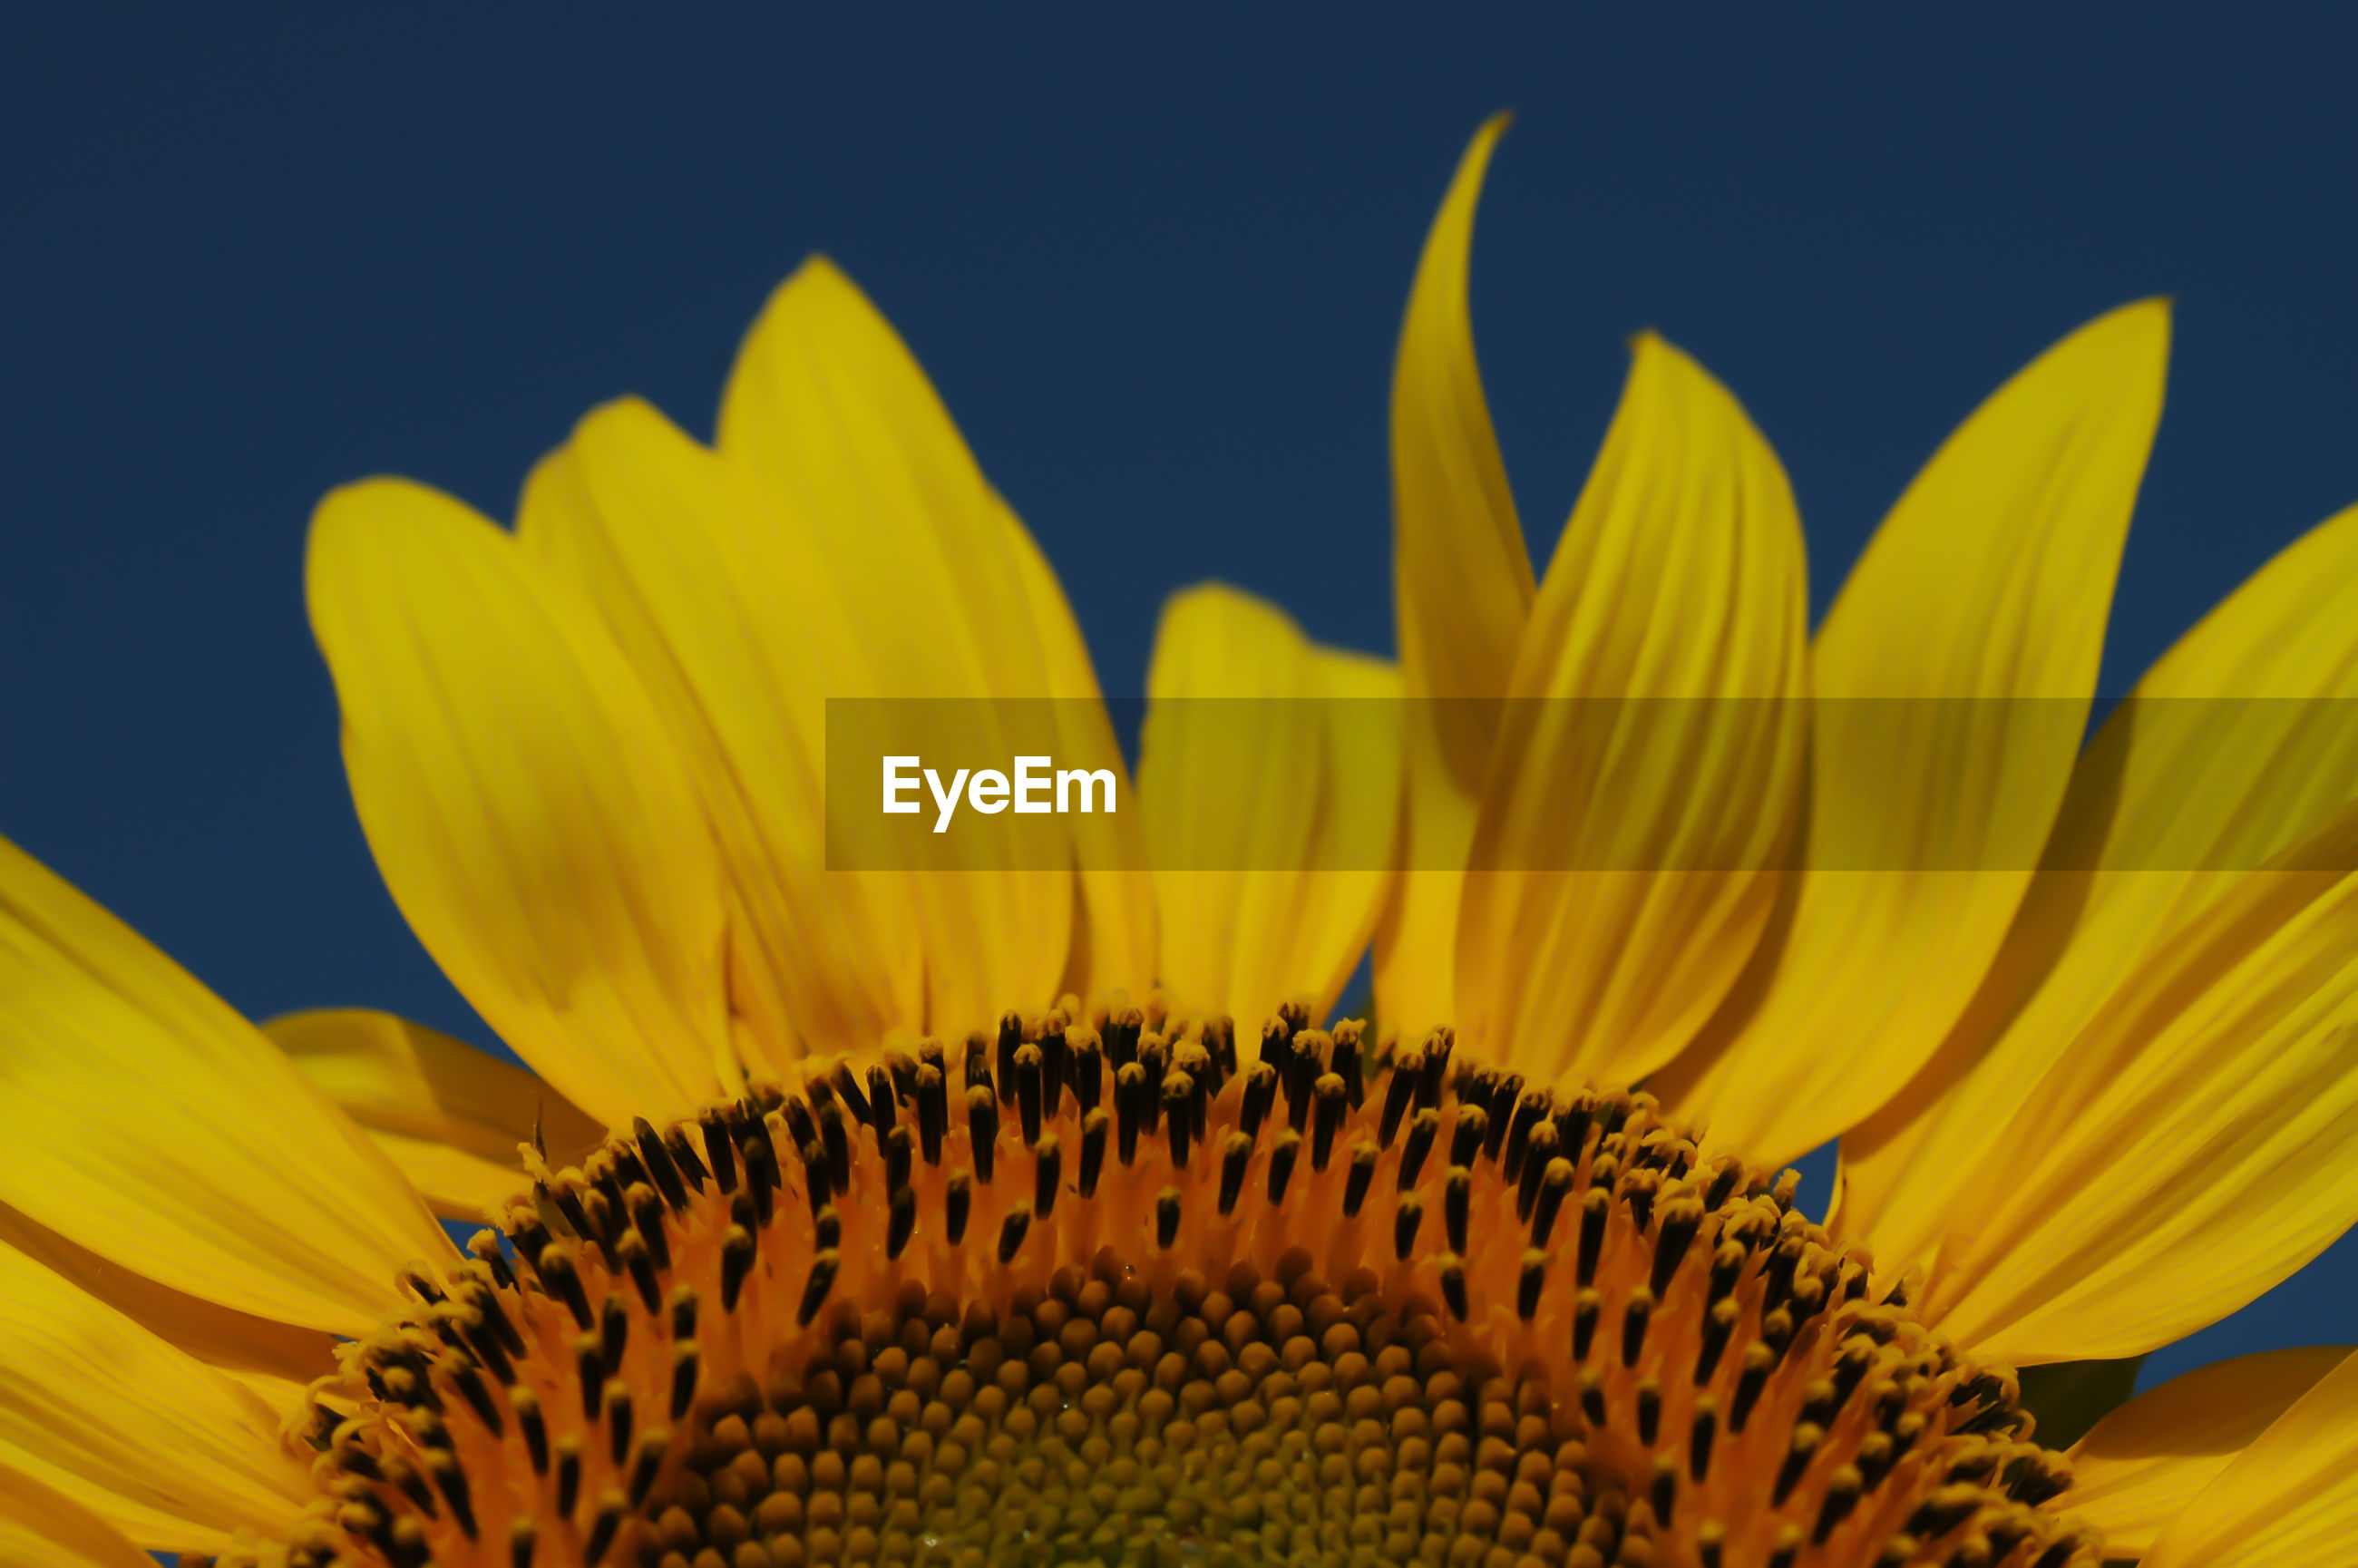 CLOSE-UP OF SUNFLOWER AGAINST YELLOW FLOWER